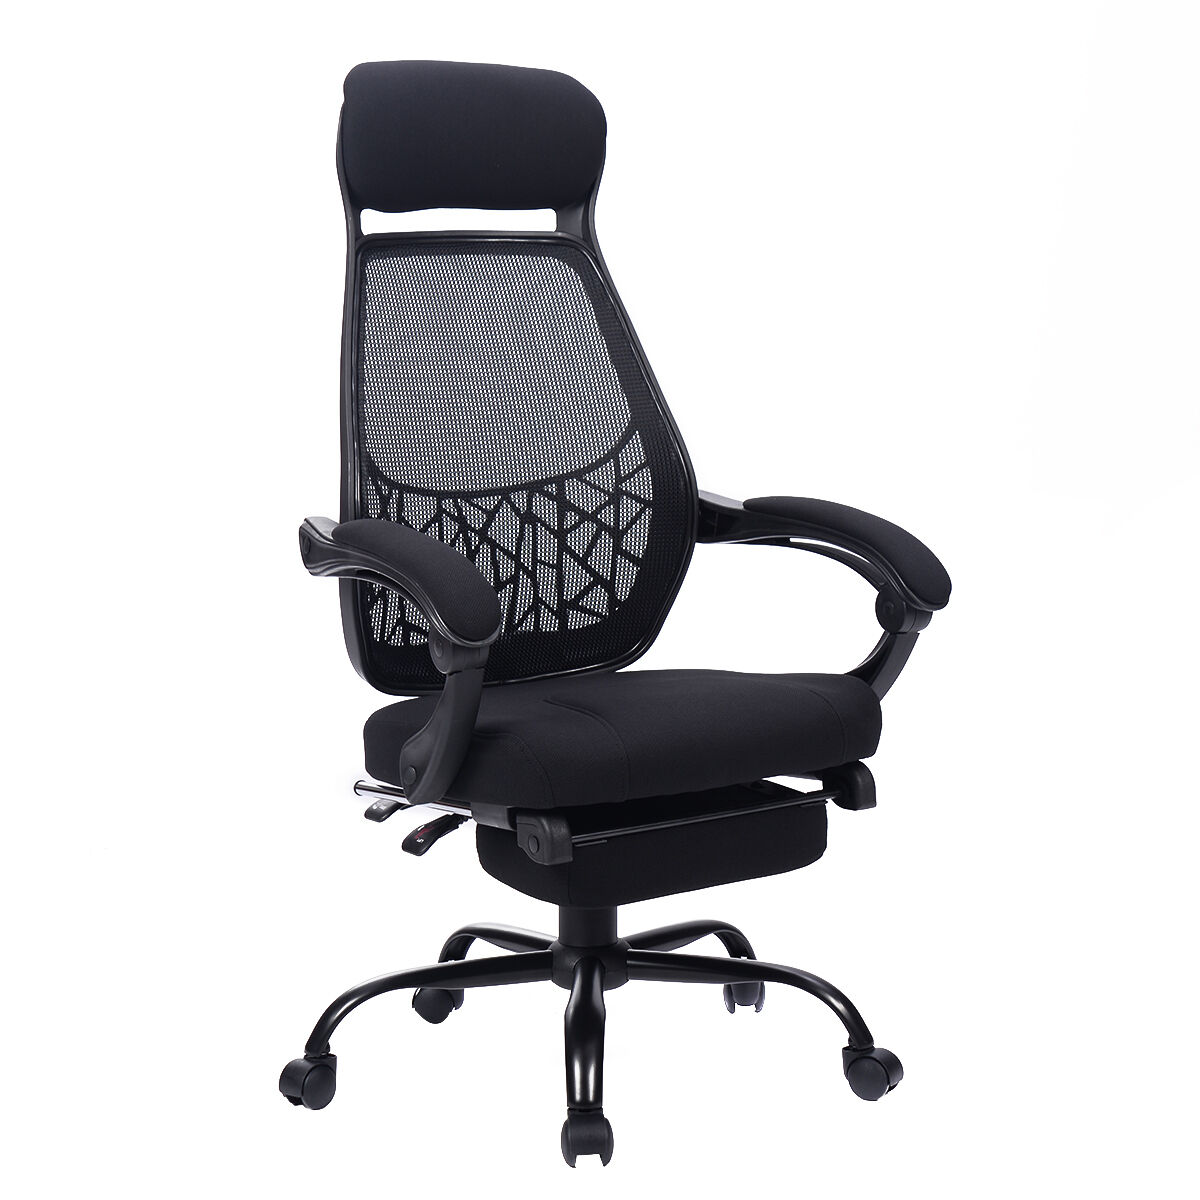 high mesh back reclining office chair computer desk task w pull out ottoman new